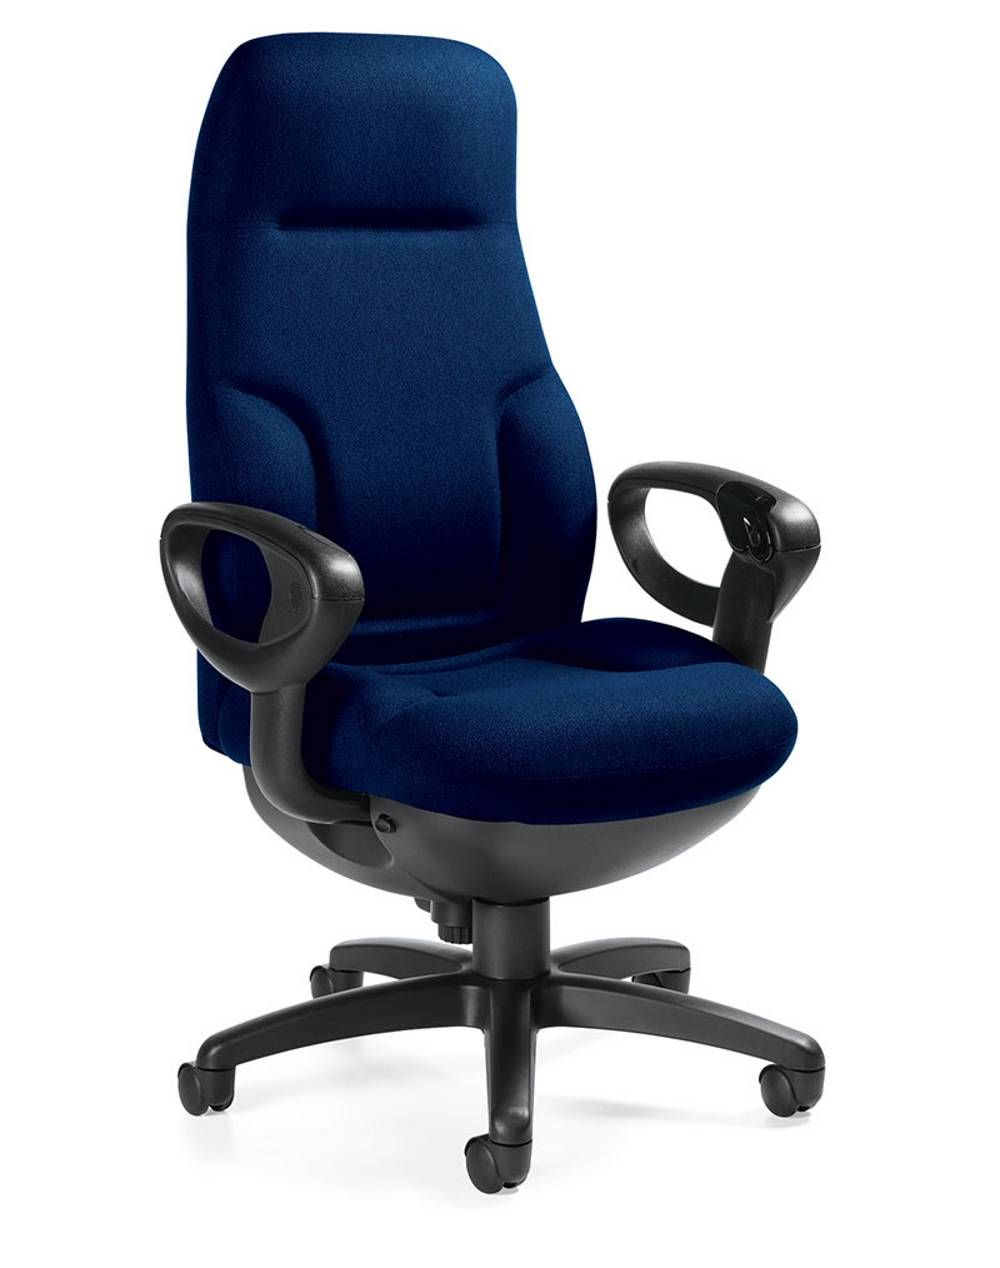 ergonomic chair types bungee amazon nice awesome of office chairs 81 in home design ideas with